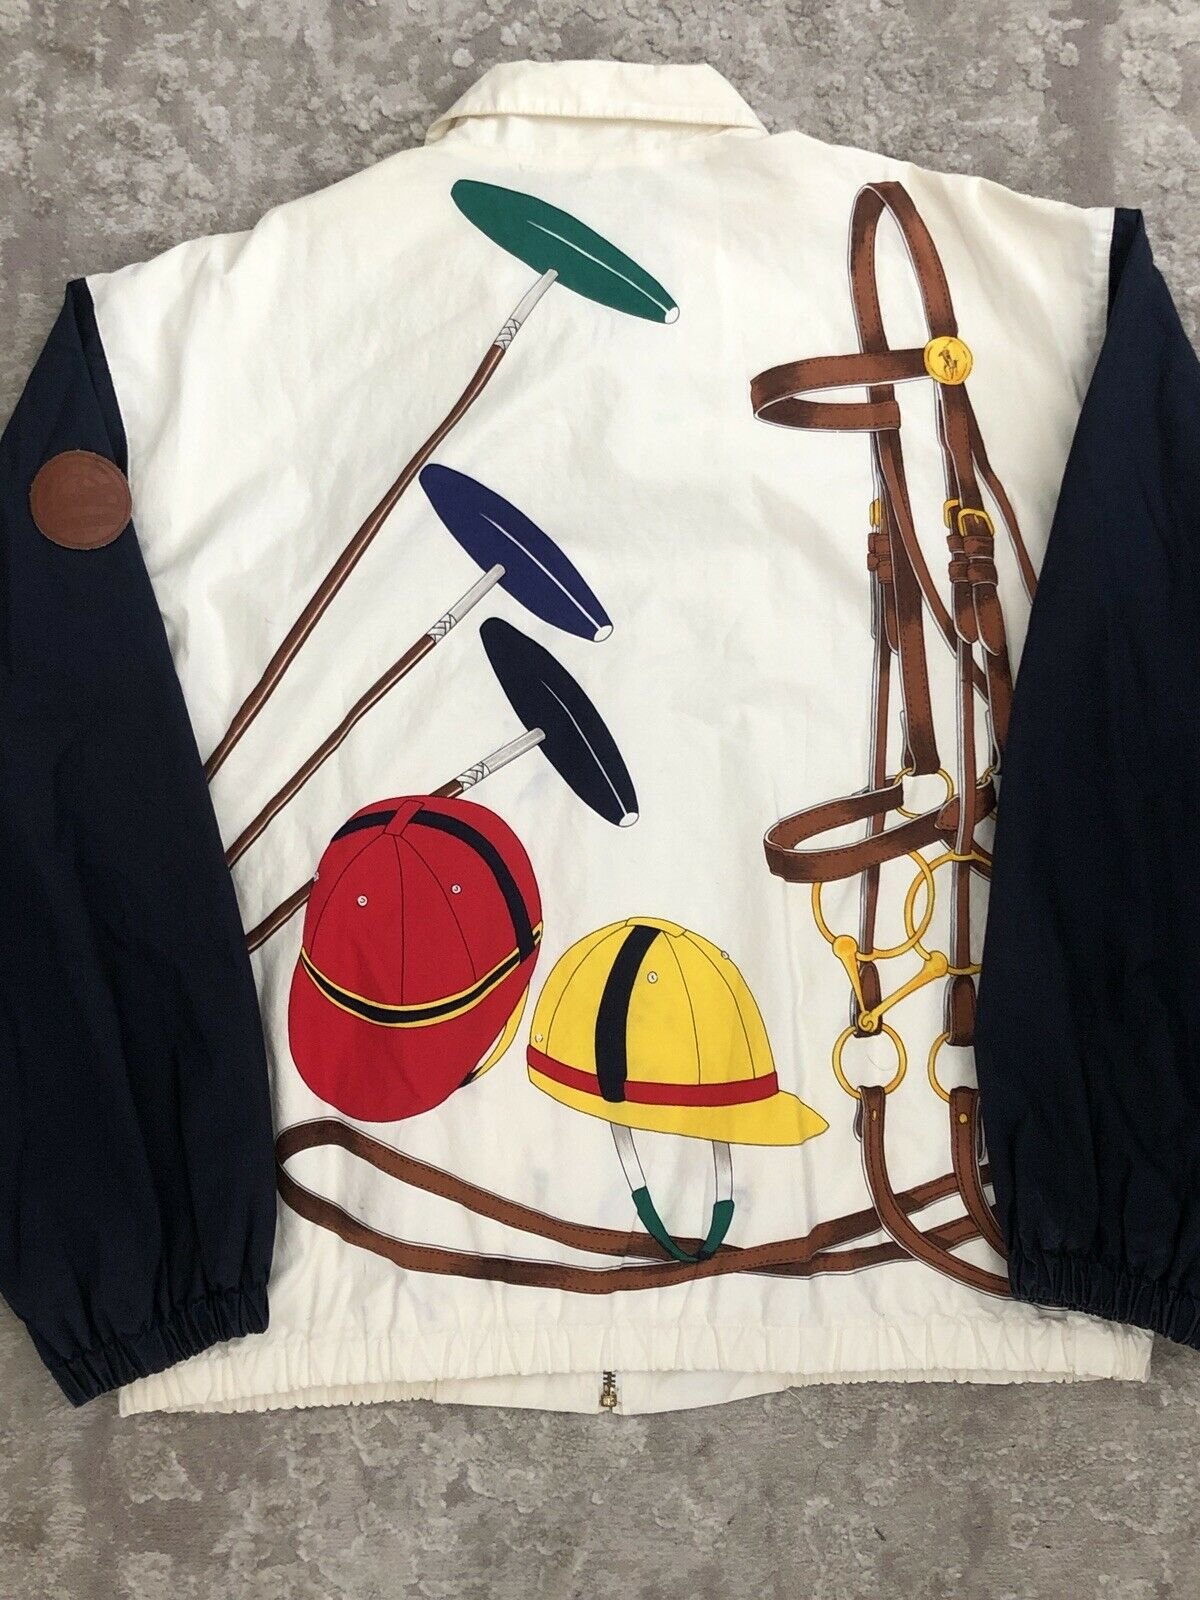 GRAIL! VTG POLO RALPH LAUREN GRAPHIC WING 1992 Wi… - image 1